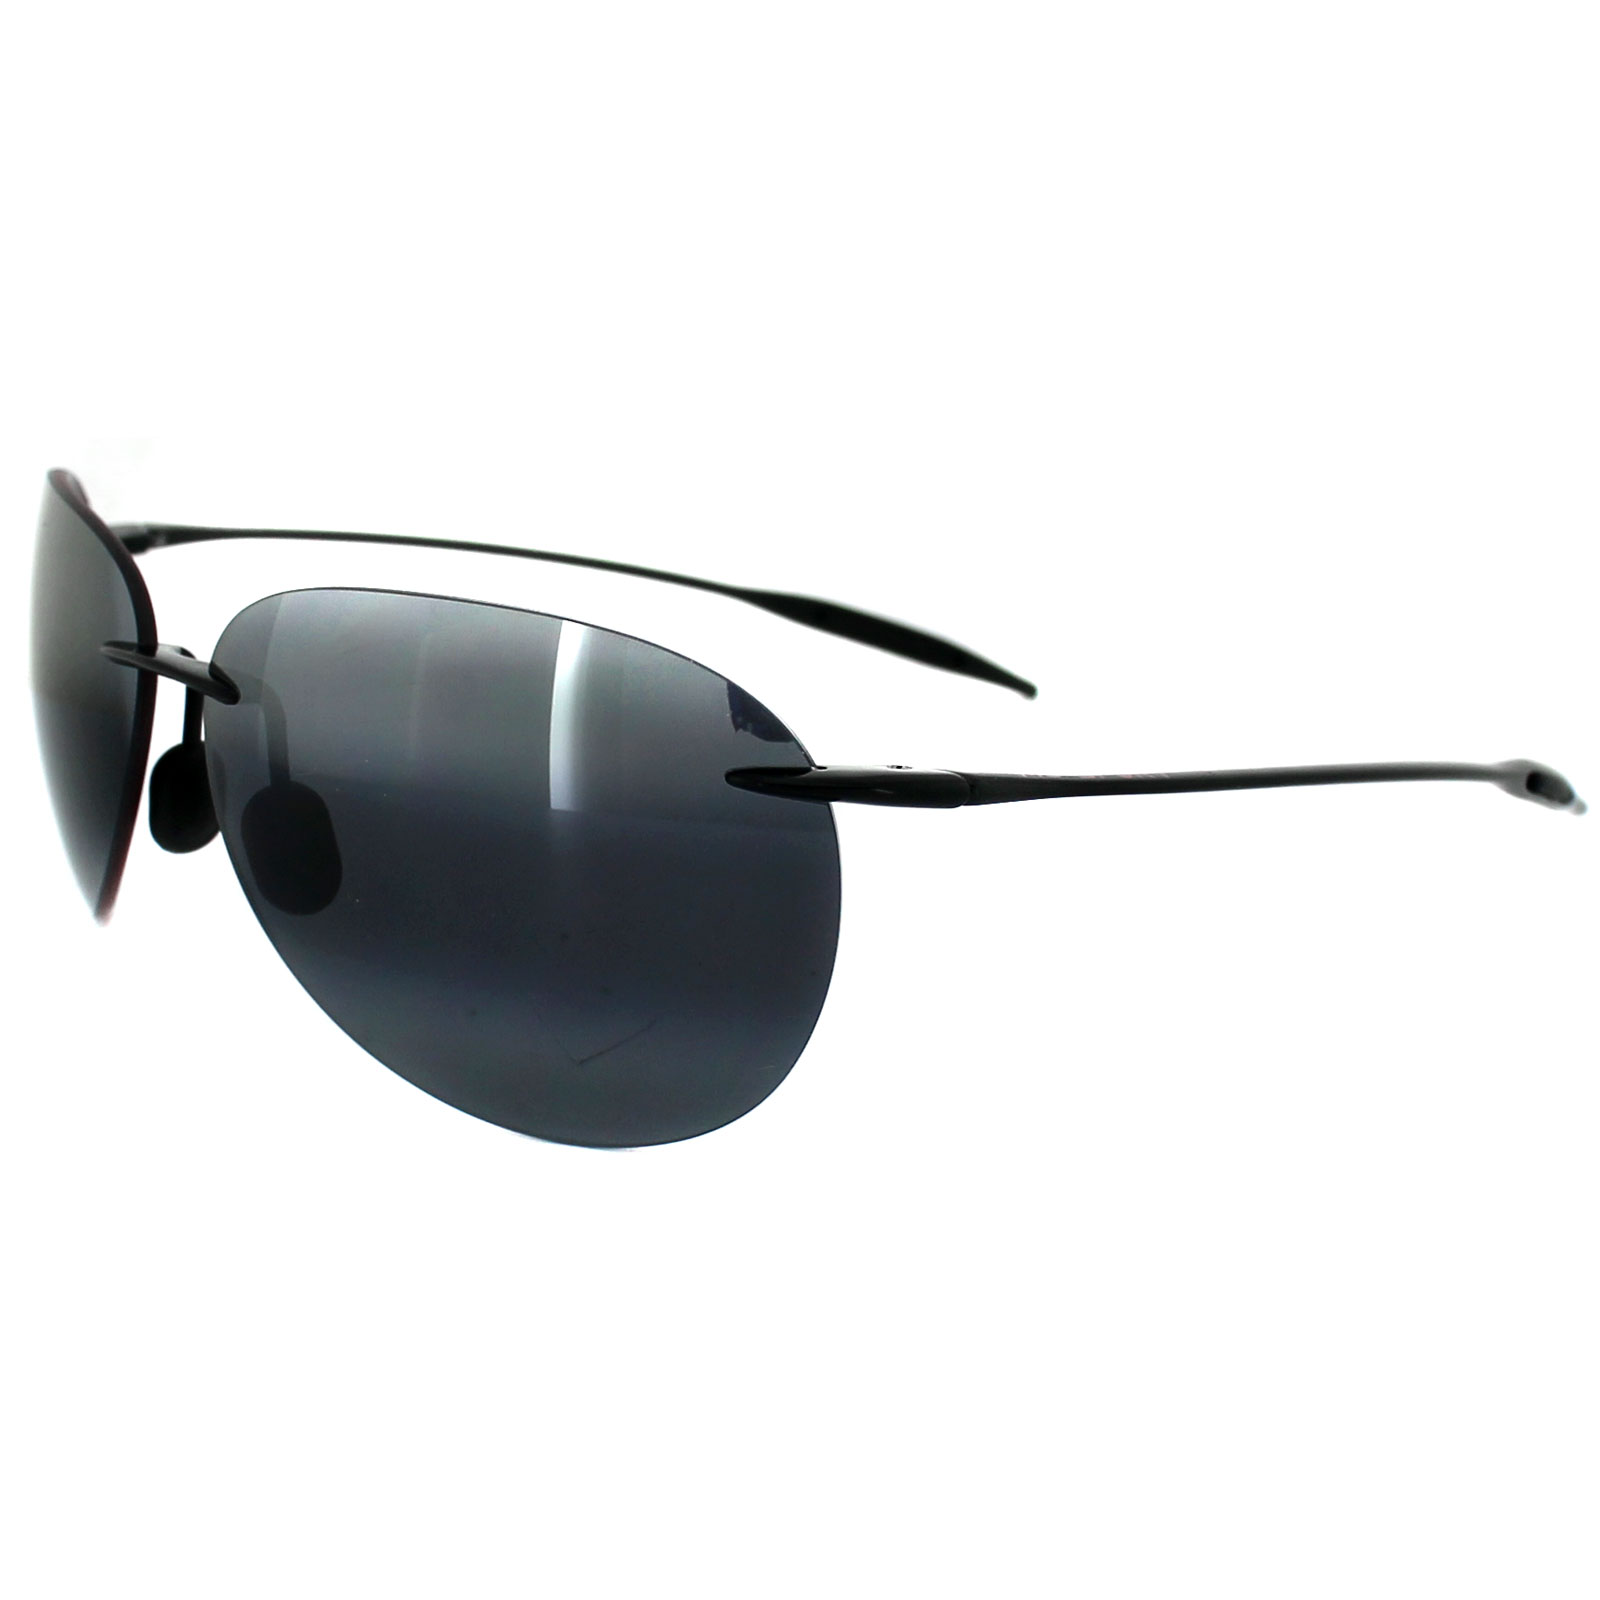 44124c2b2d5 Maui Jim Sugar Beach 421 02 Polarized Sport Sunglasses « Heritage Malta